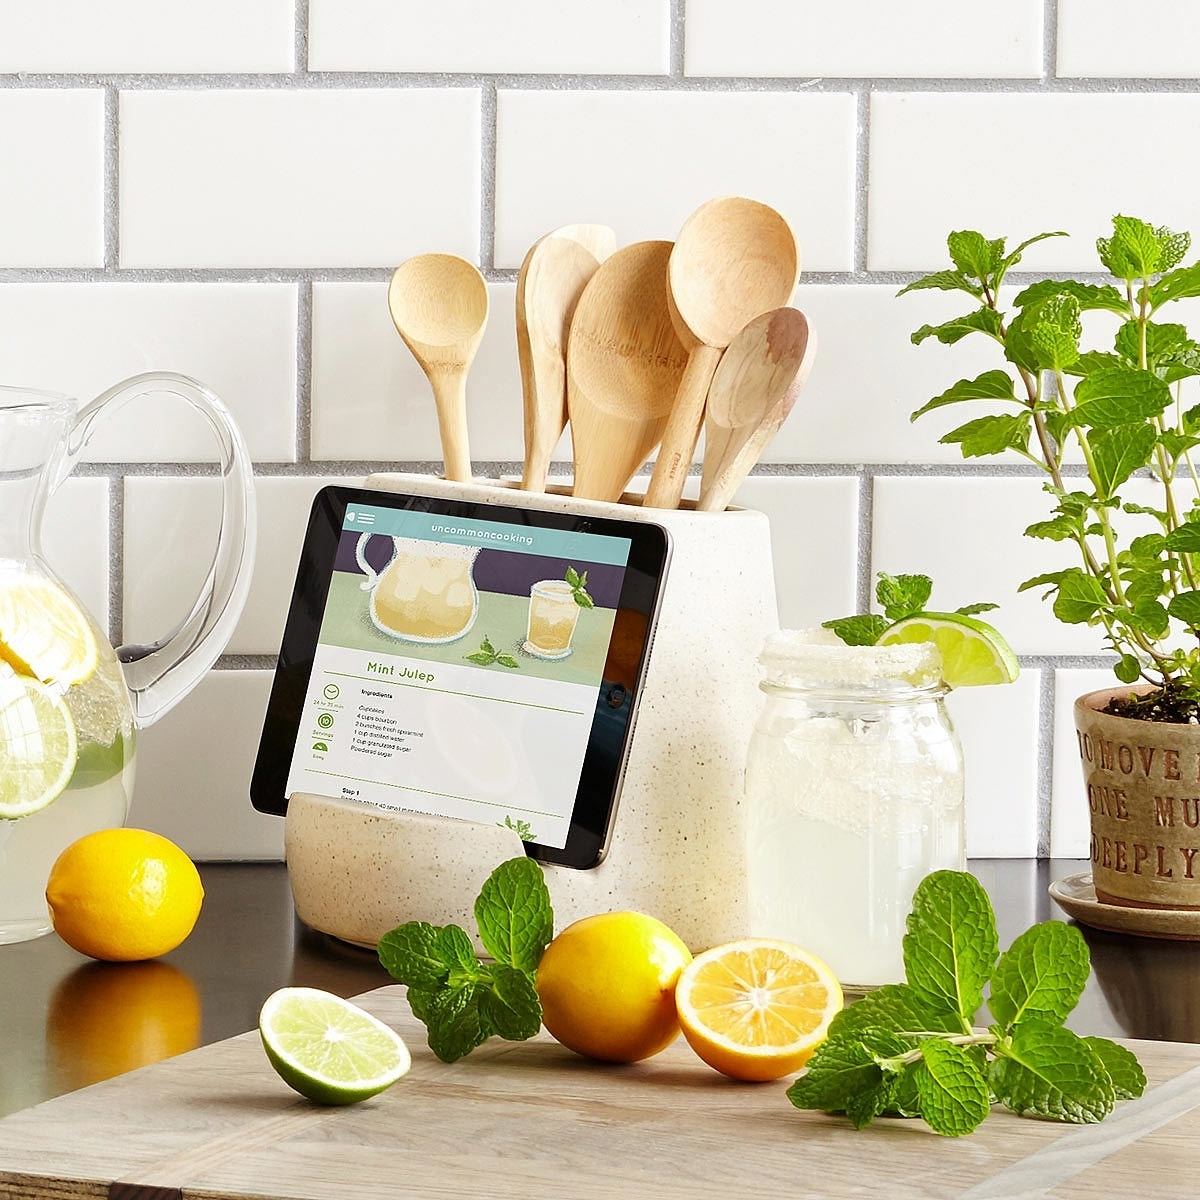 The utensil holder, featuring a convenient notch specially designed to fit a tablet